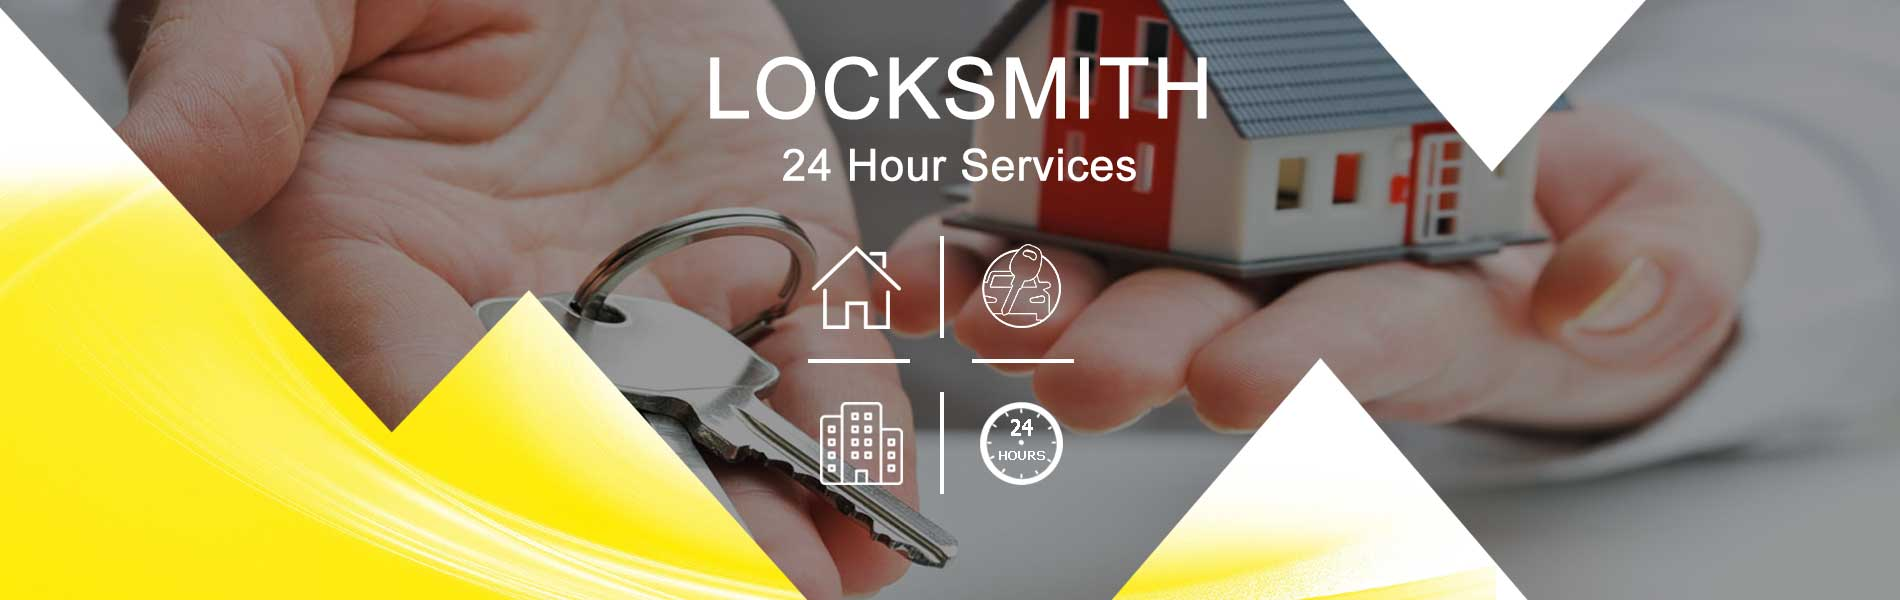 Thornton Locksmith Store, Thornton, IL 708-297-9315